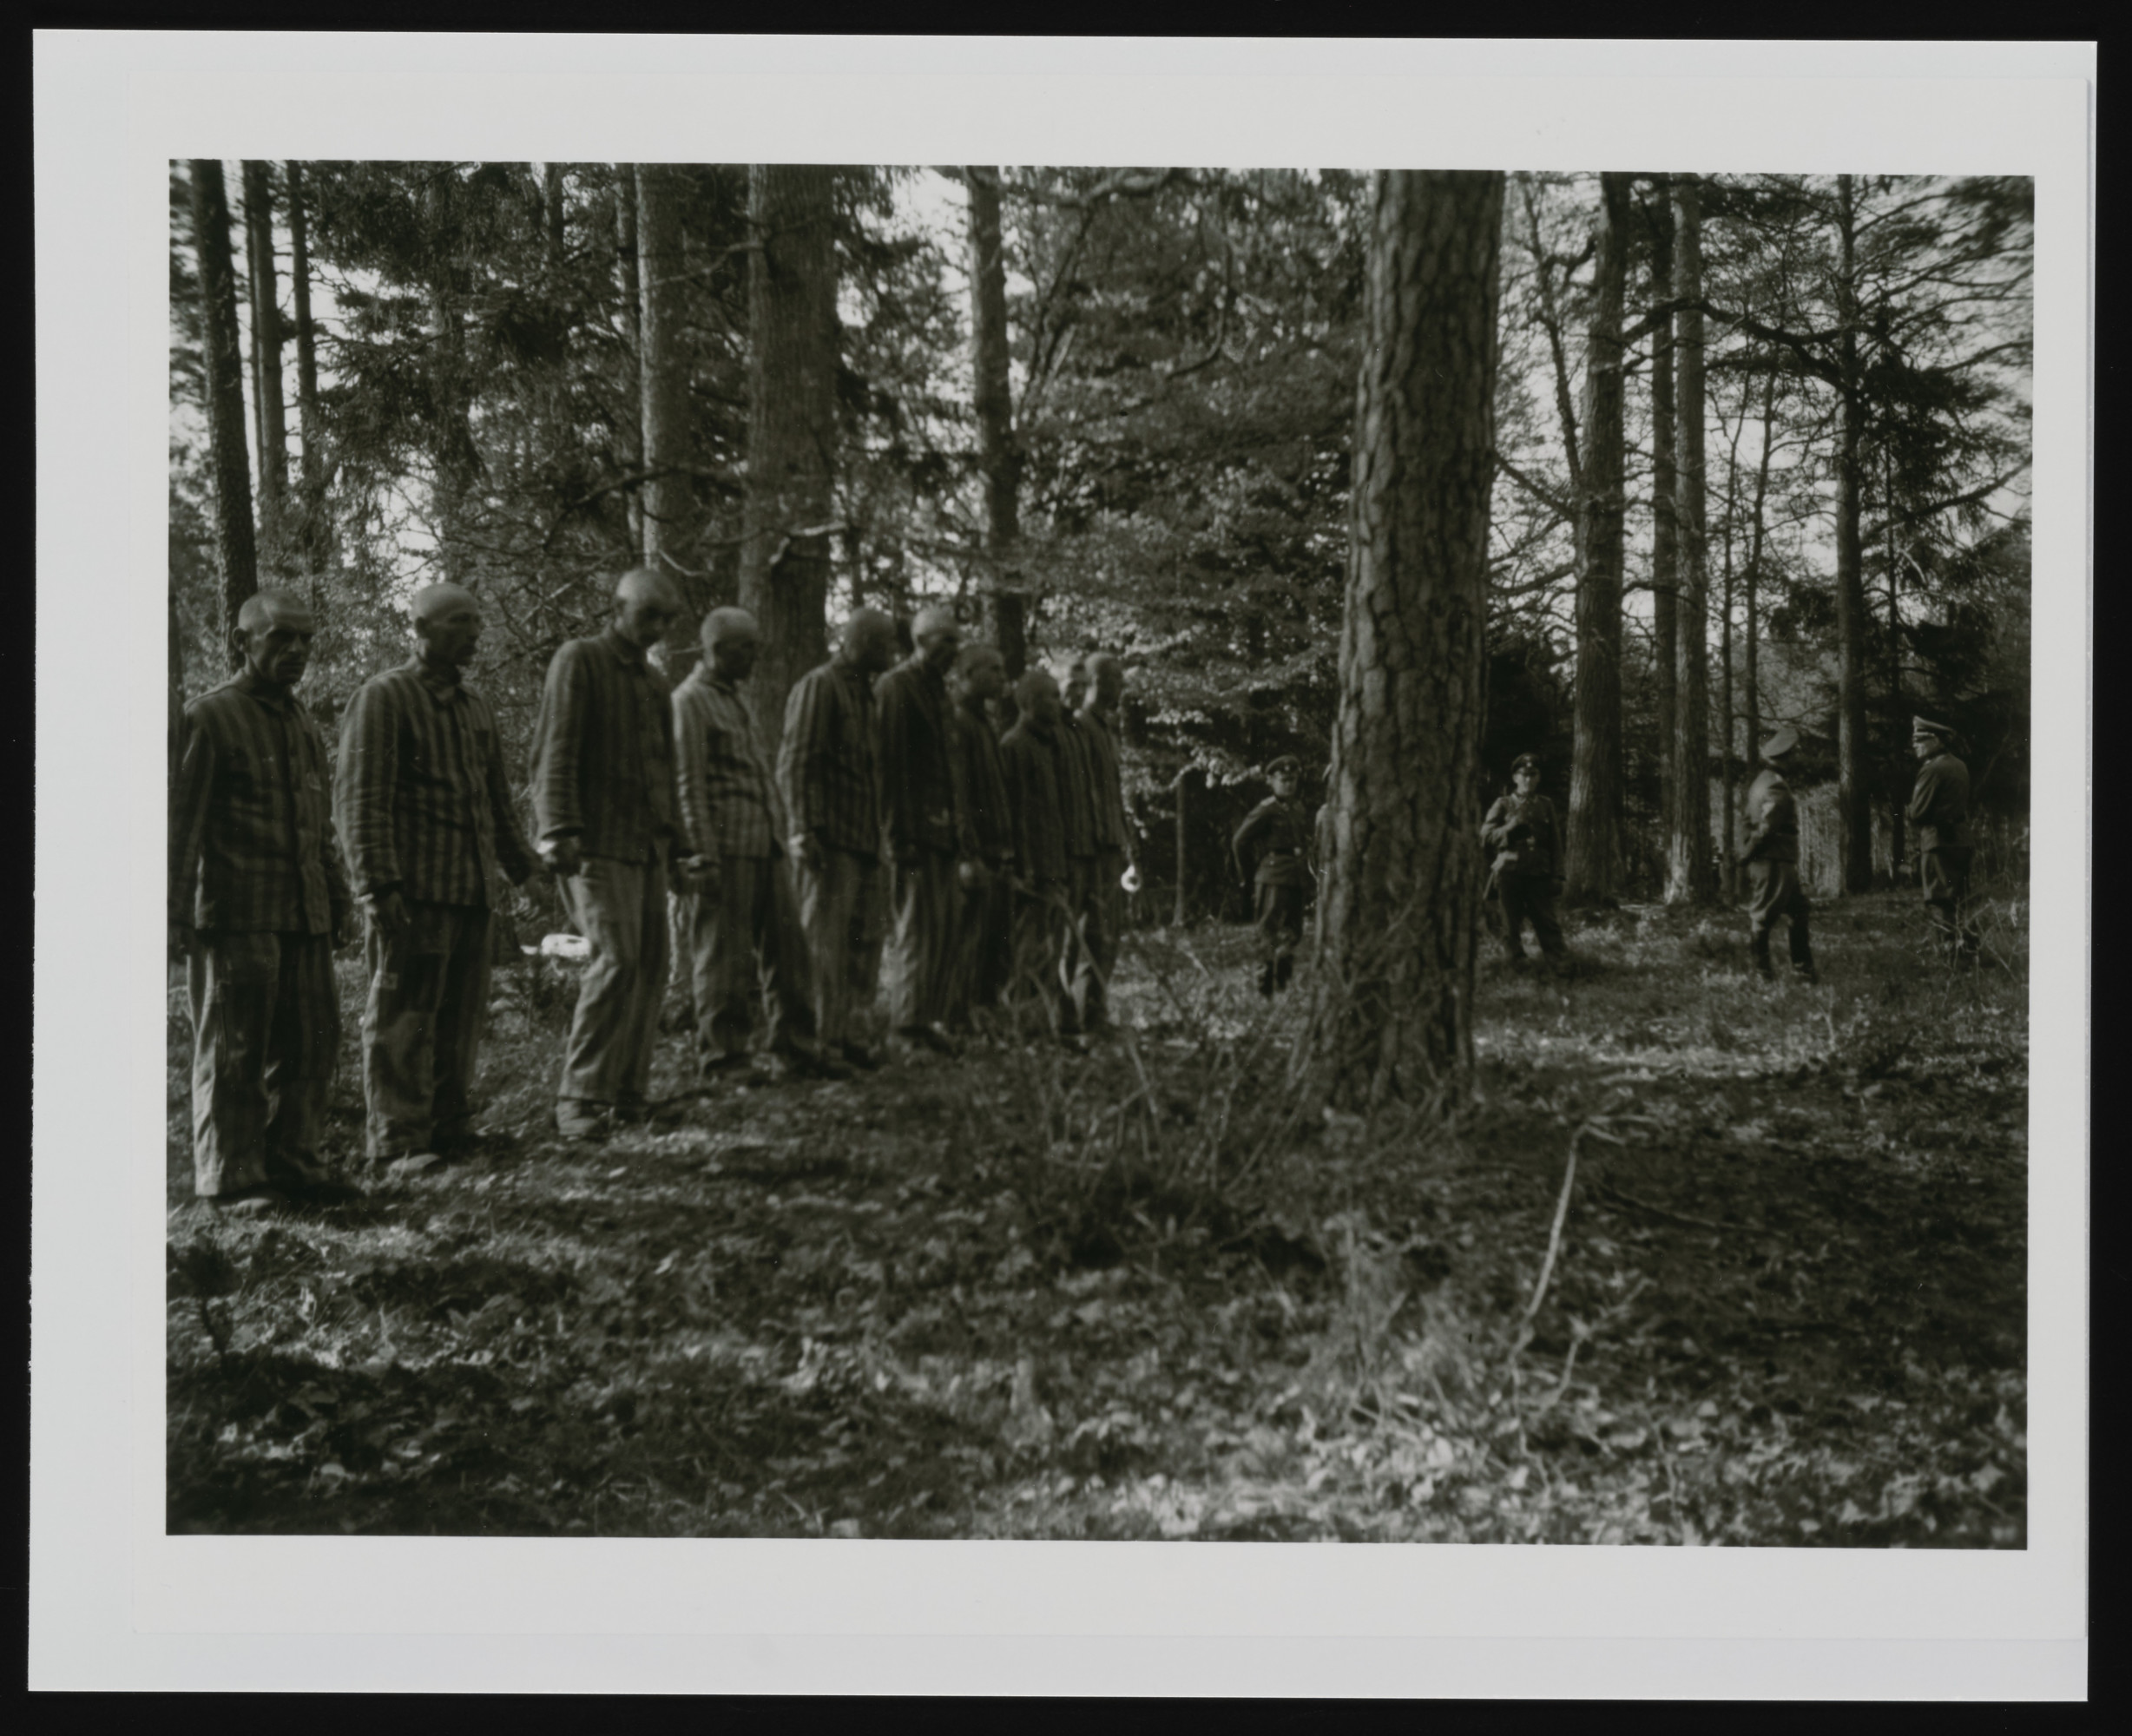 Prisoners from Buchenwald awaiting execution in the forest near the camp.